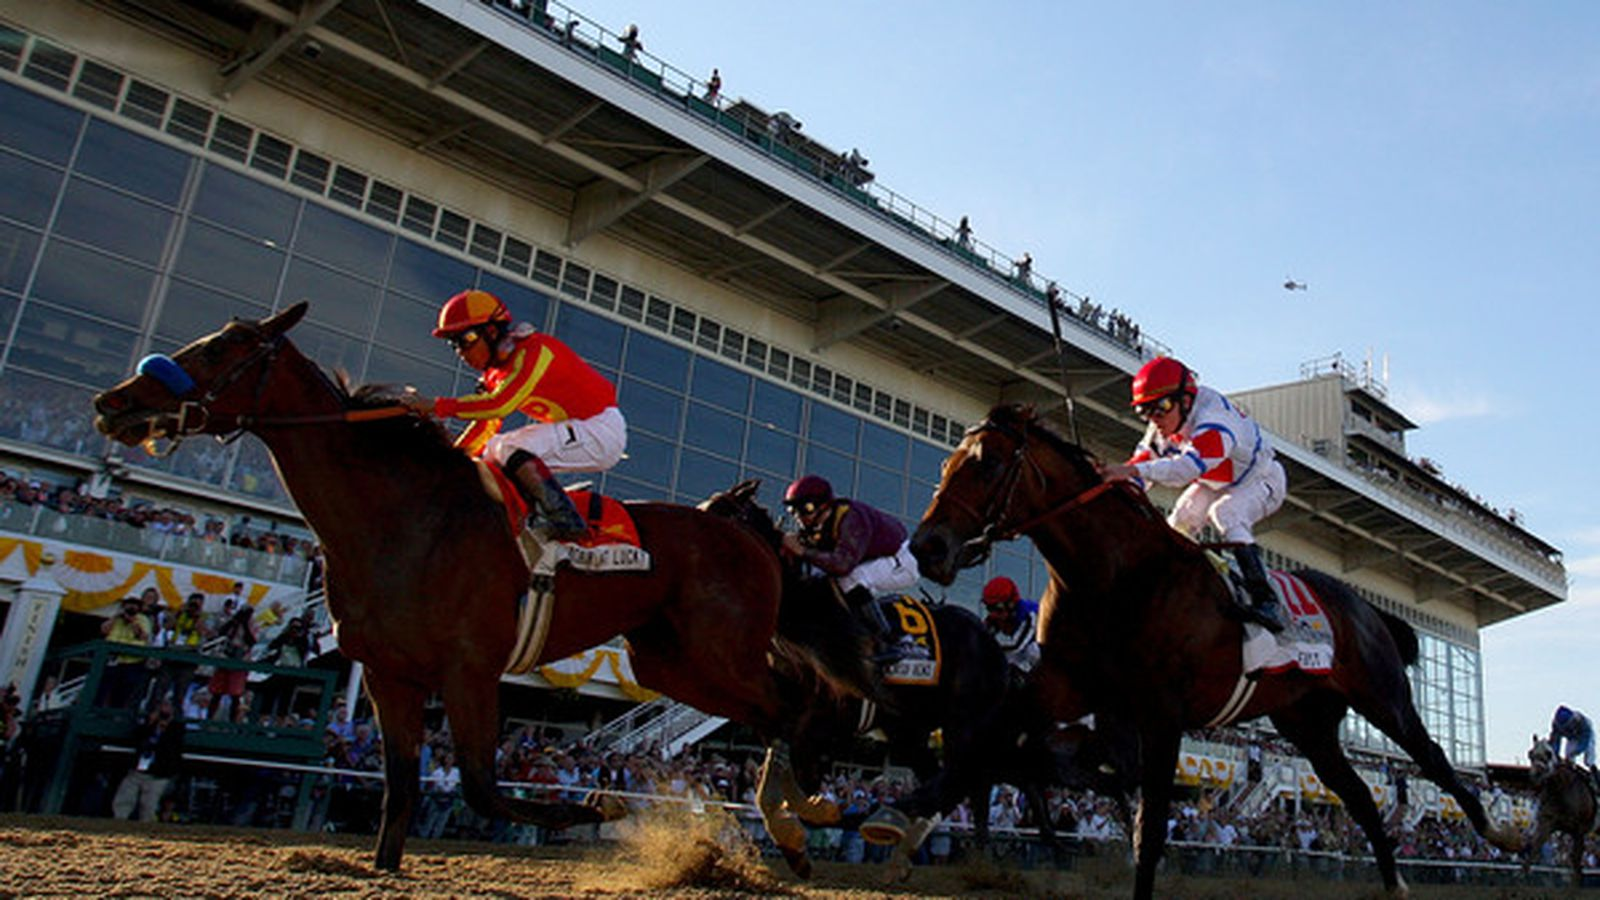 history of the most prestigious horse race the kentucky derby Buy 2018 kentucky derby the kentucky derby is seeing a significantly lower price as the 2017 prestigious race as the kentucky derby approaches, horse.